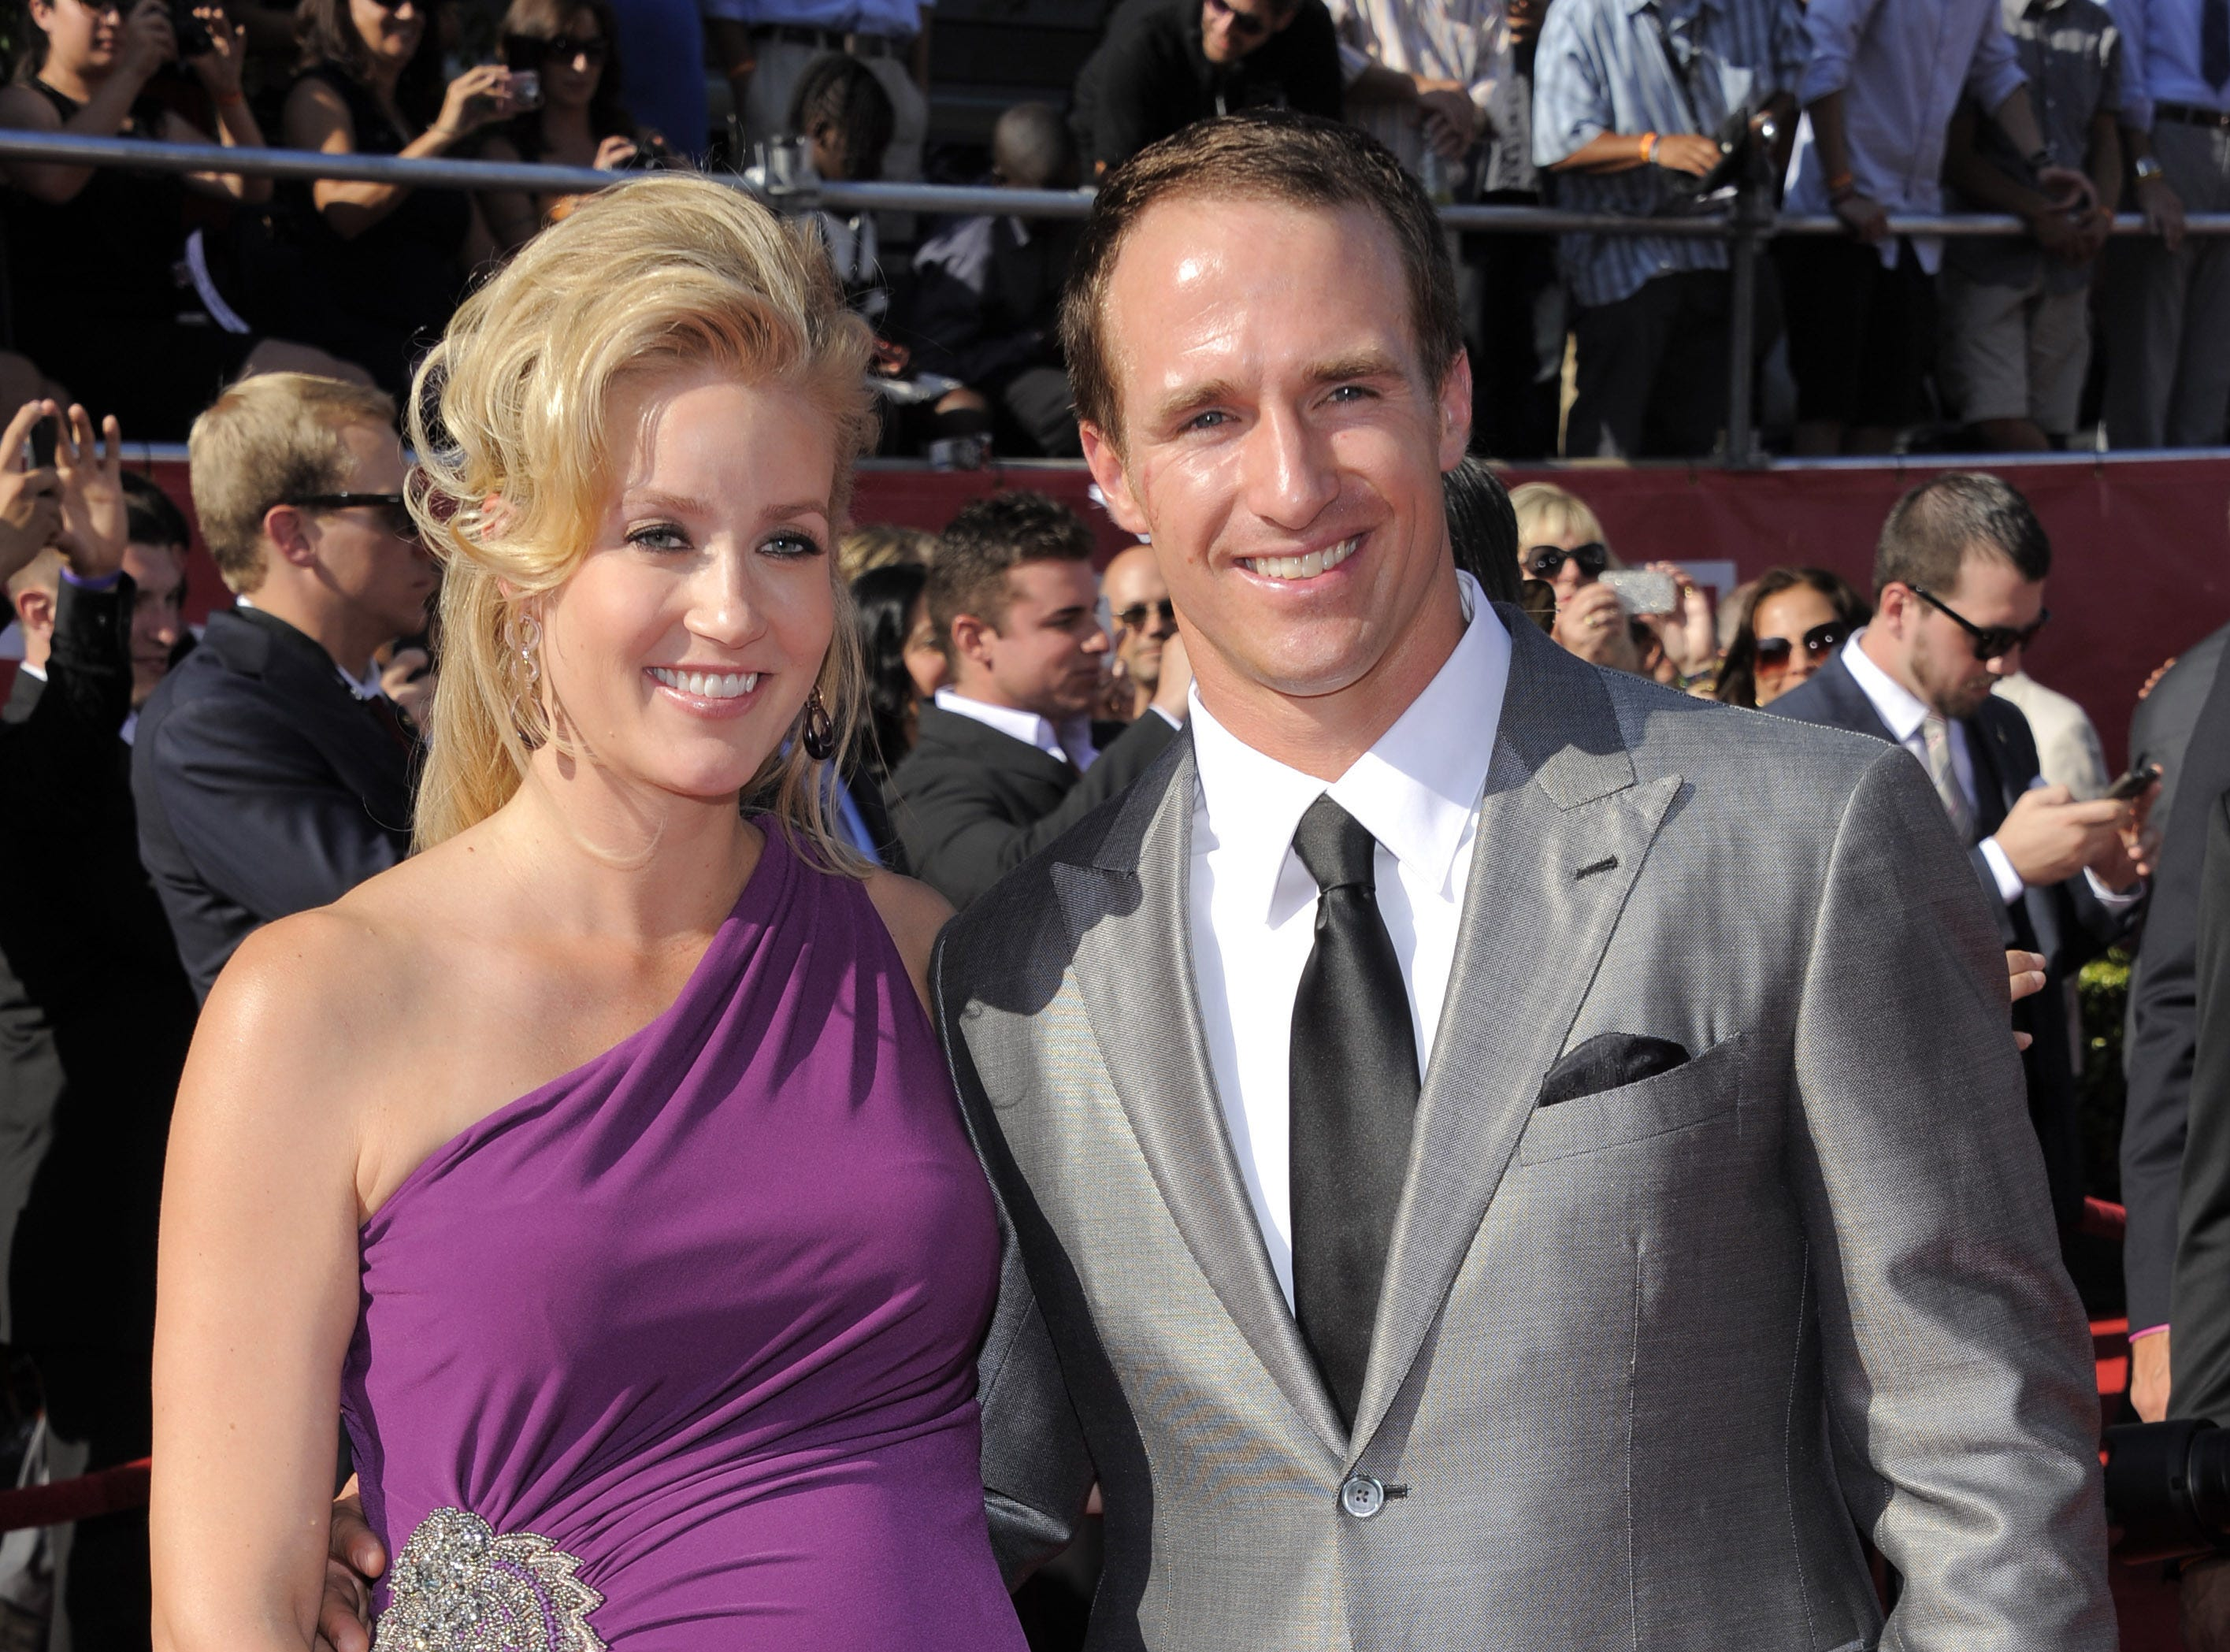 2012: Brittany and Drew Brees, both of whom attended Purdue, pledged  $1 million toward the Boilermakers? new football complex. They are shown arriving at the ESPY Awards July 11.